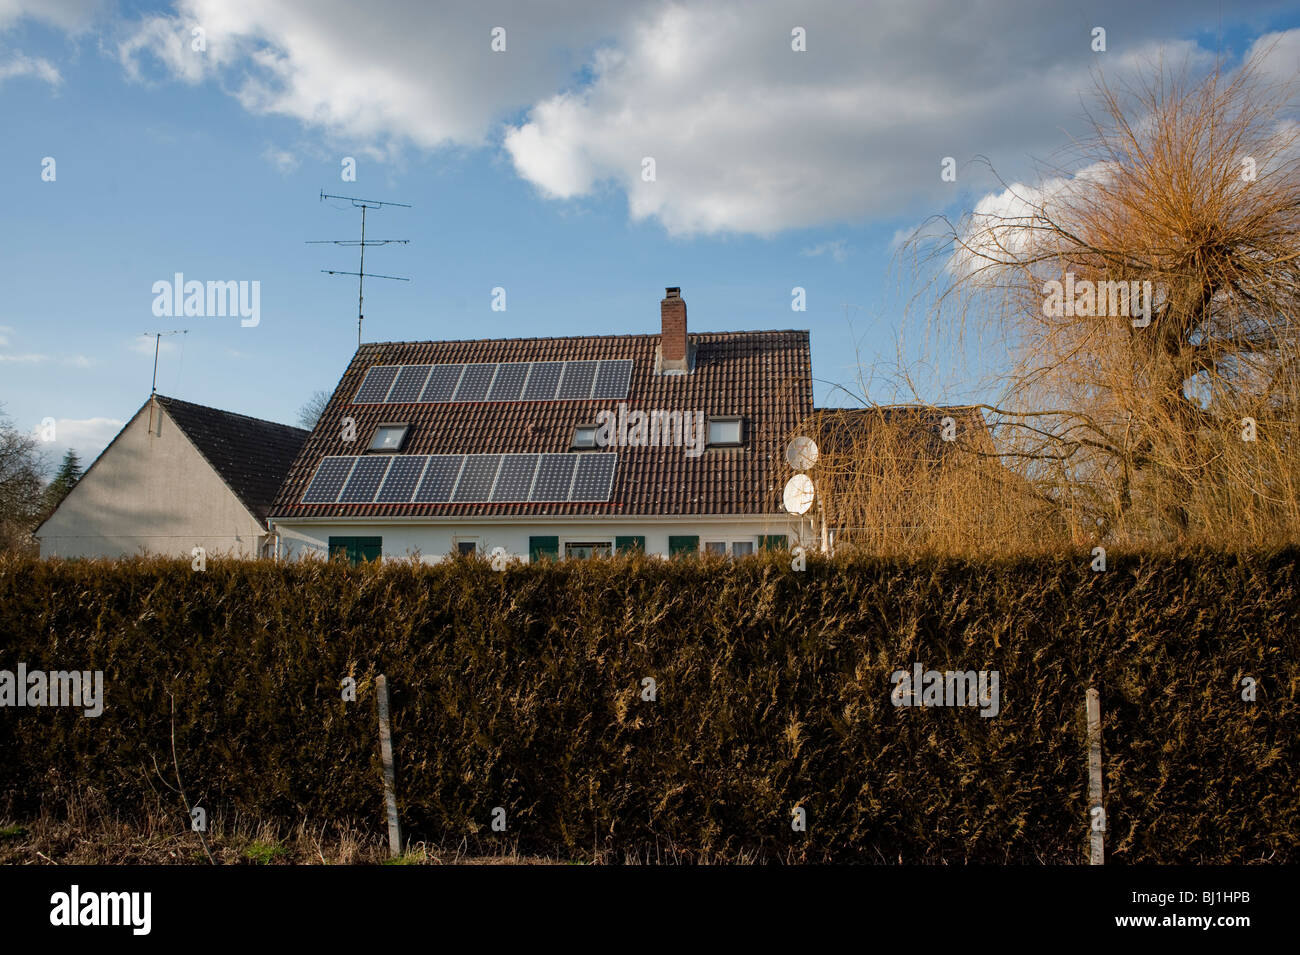 Somme Region, North of France, French Country House, Outside, Solar Energy Panels on Rooftop - Stock Image